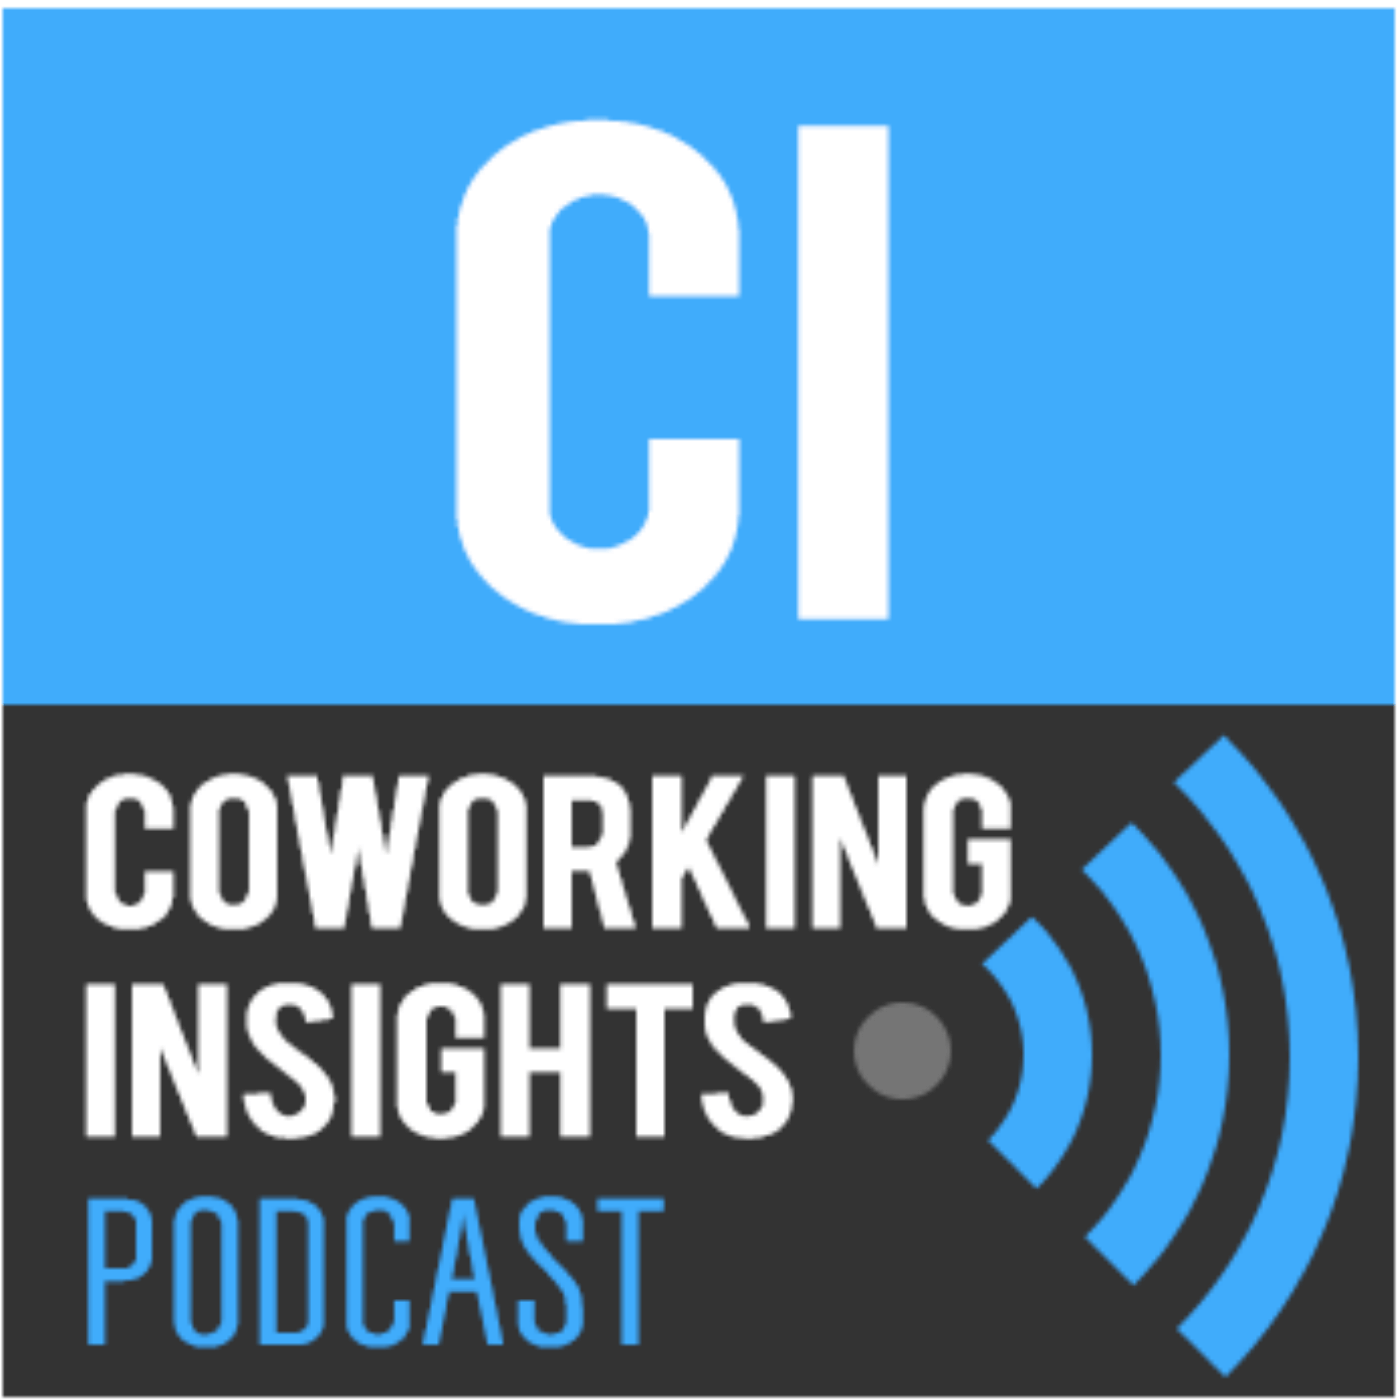 Ep 6 - Top 3 Features Members Look for in a Coworking Space